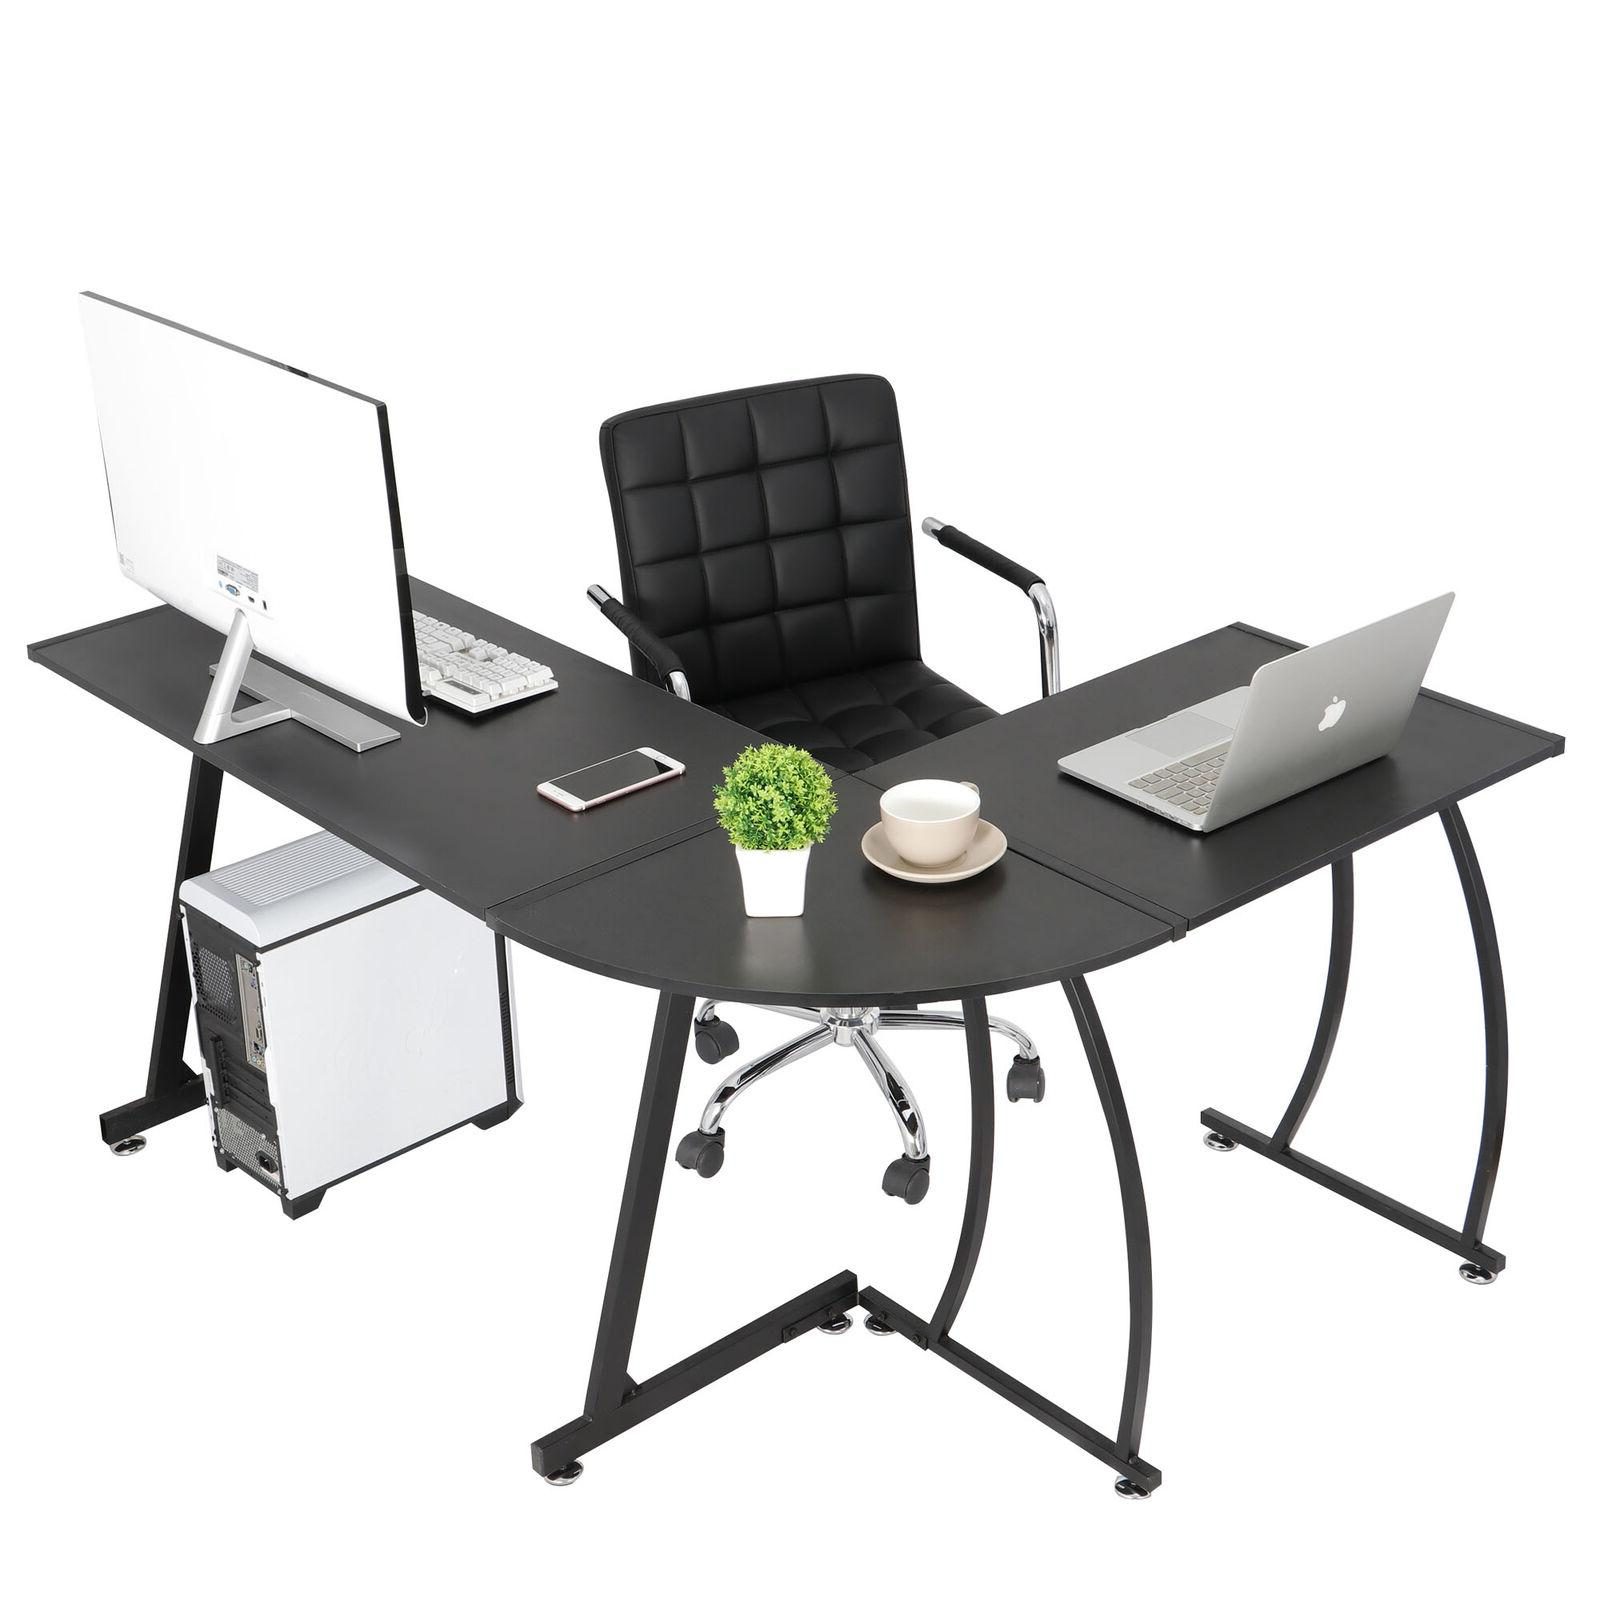 L-Shaped Corner Gaming Desk PC Writting Table Office